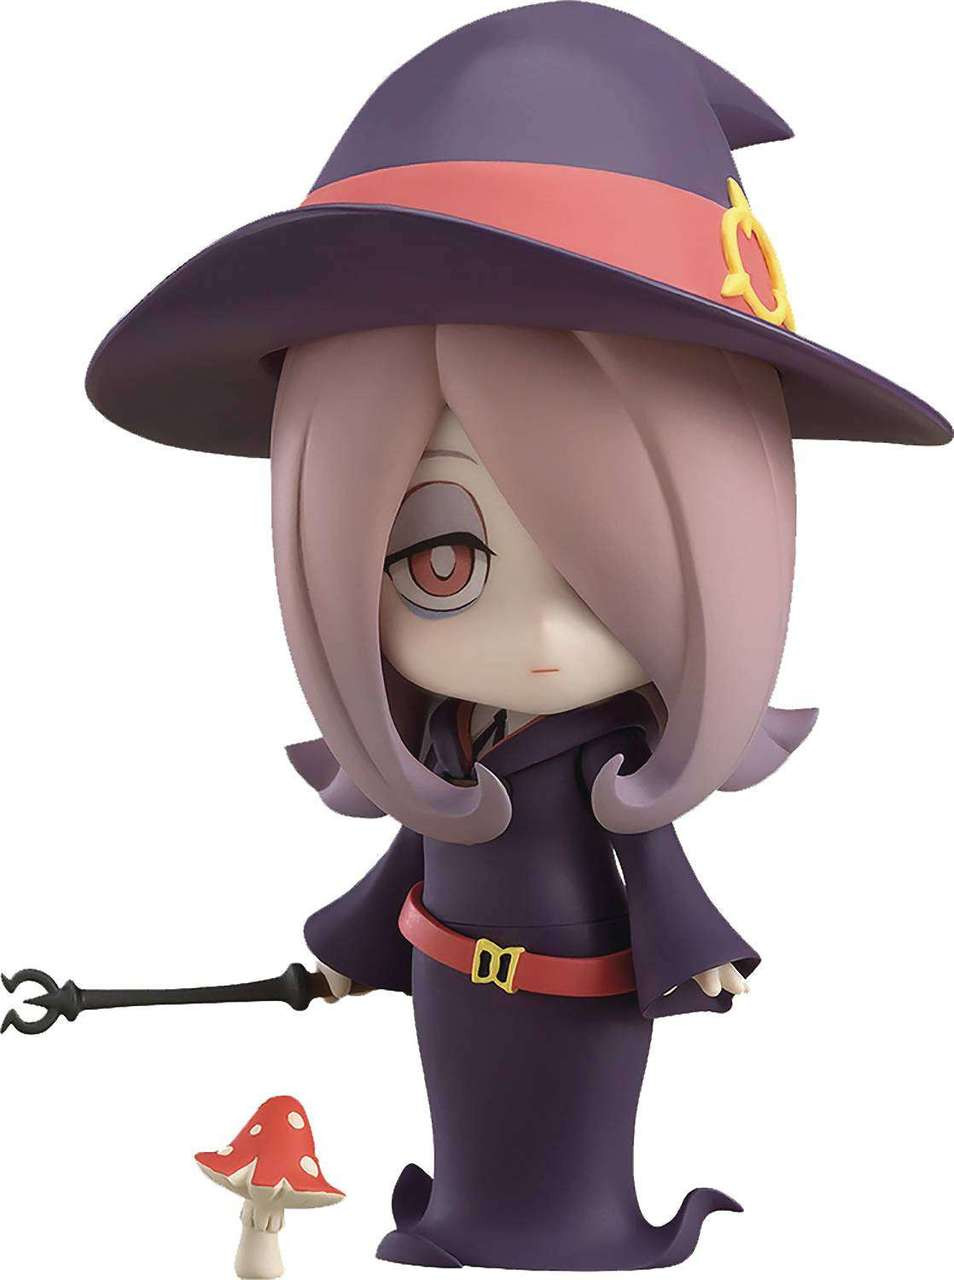 Little Witch Academia Nendoroid Sucy Manbavaran Action Figure (Pre-Order ships May)